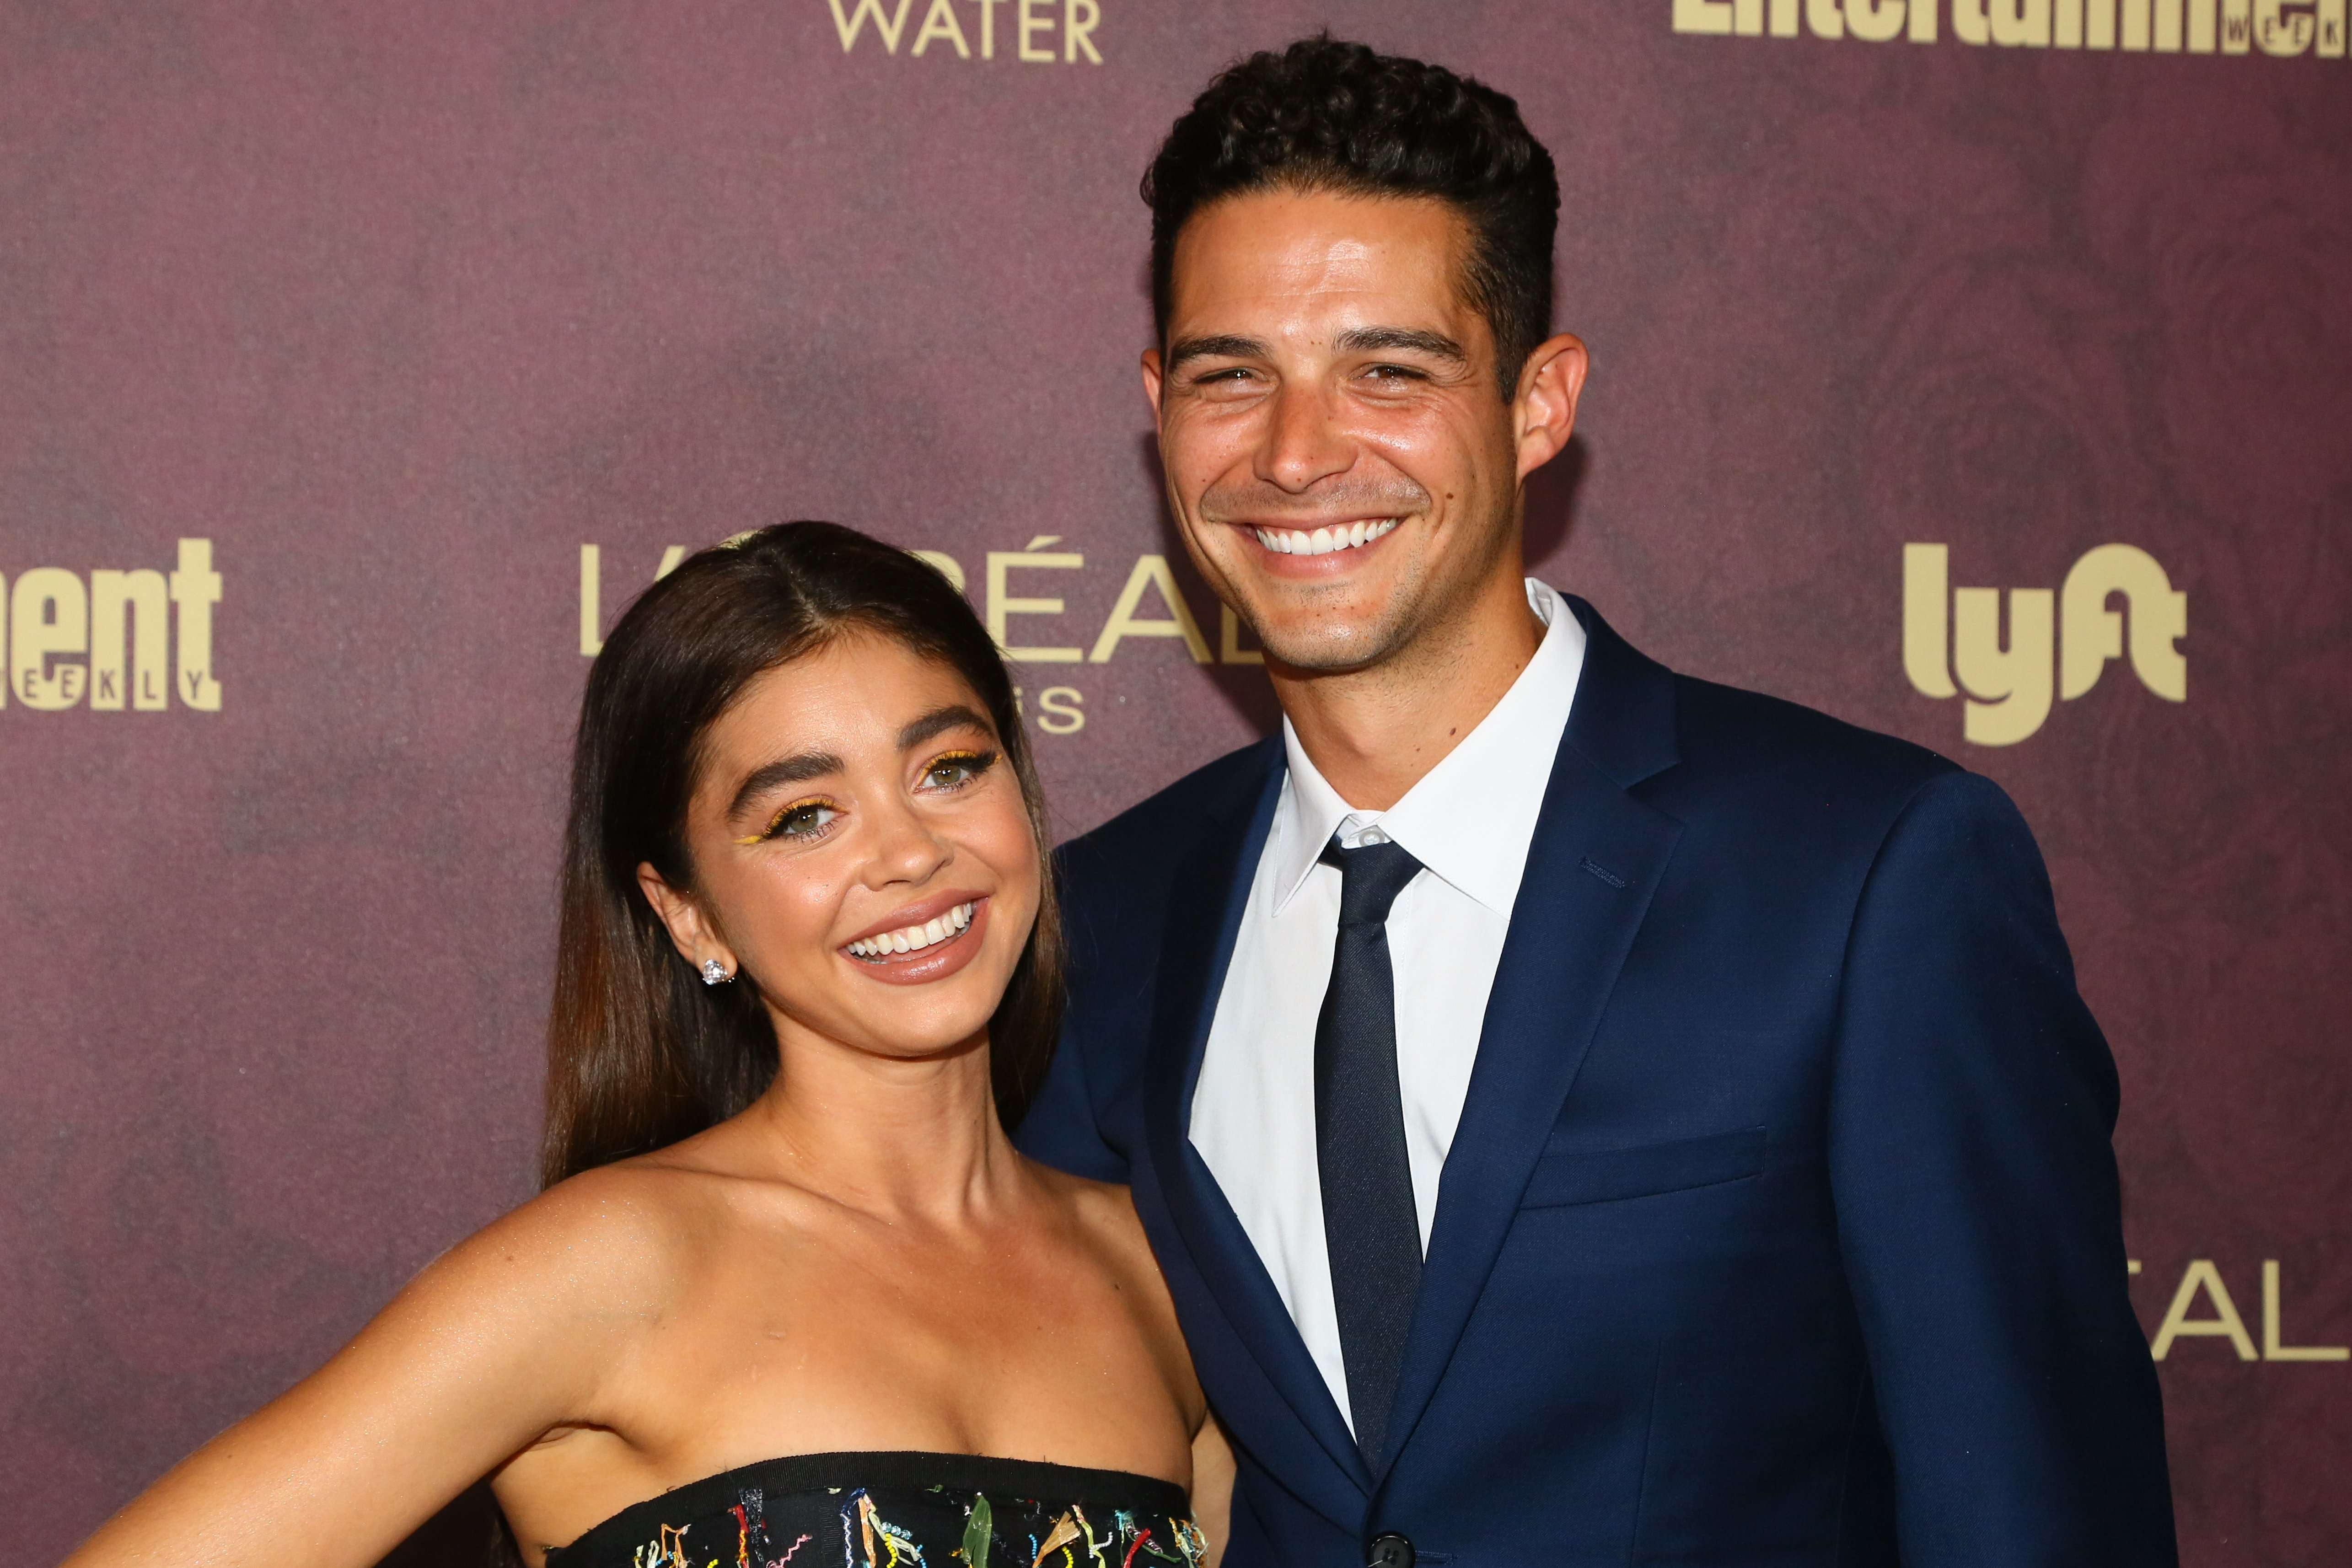 Sarah Hyland (L) and Wells Adams arrive to the 2018 Entertainment Weekly Pre-Emmy Party at Sunset Tower Hotel on September 15, 2018, in West Hollywood, California. | Source: Getty Images.